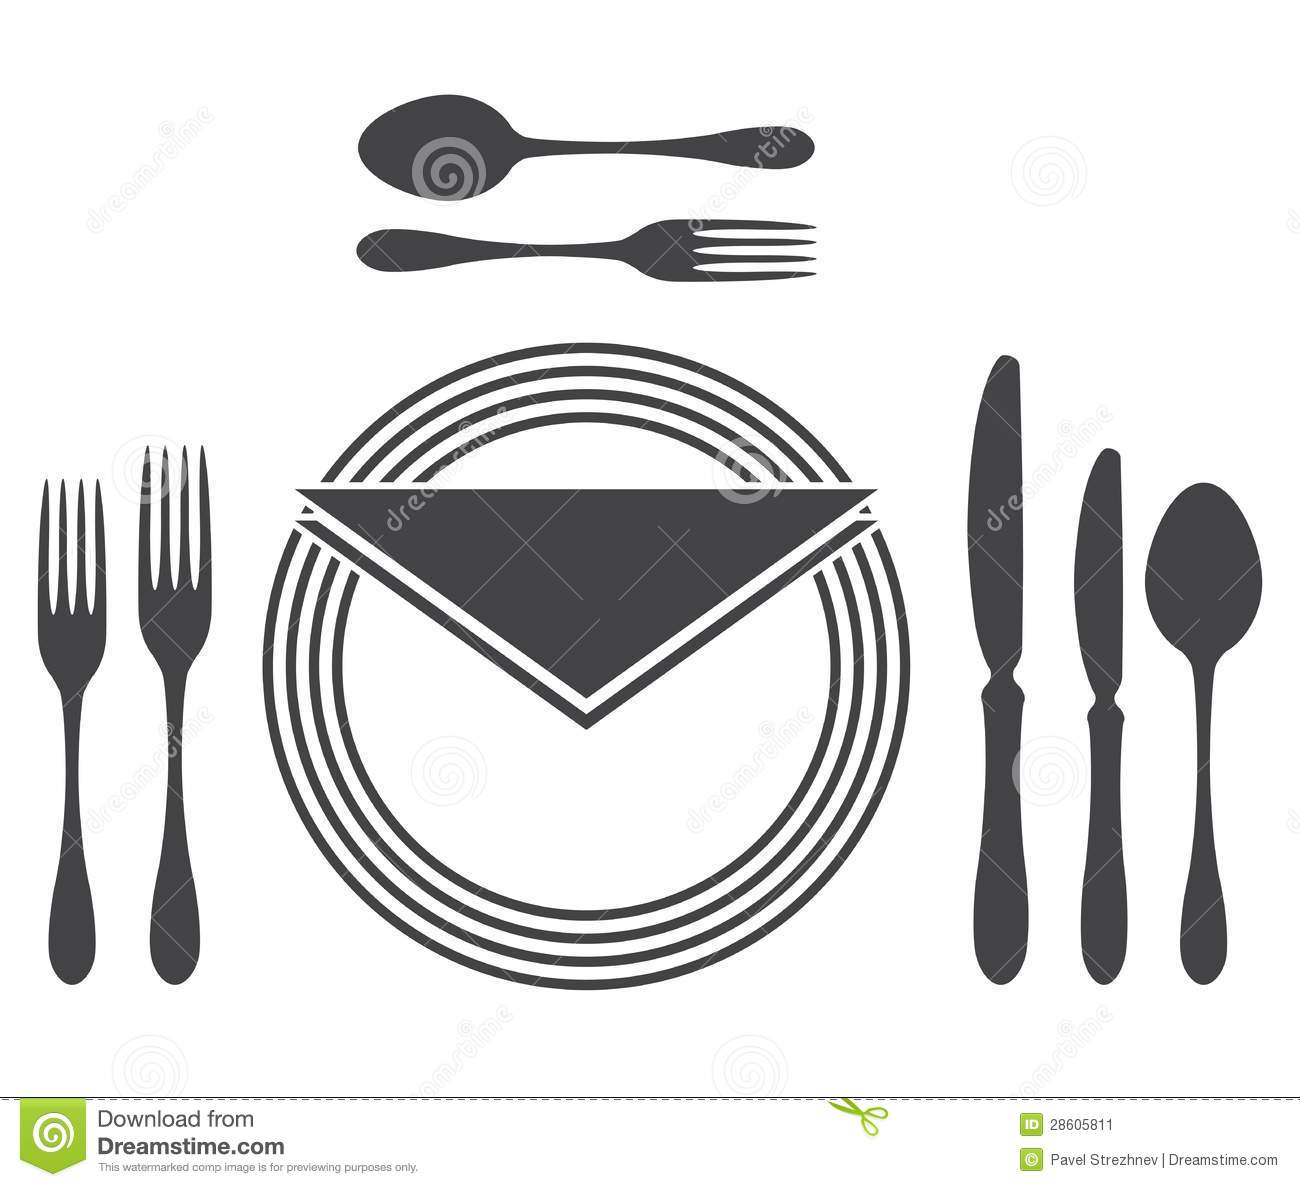 Etiquette Proper Table Setting  sc 1 st  Dreamstime.com & Etiquette Proper Table Setting Stock Vector - Illustration of paper ...